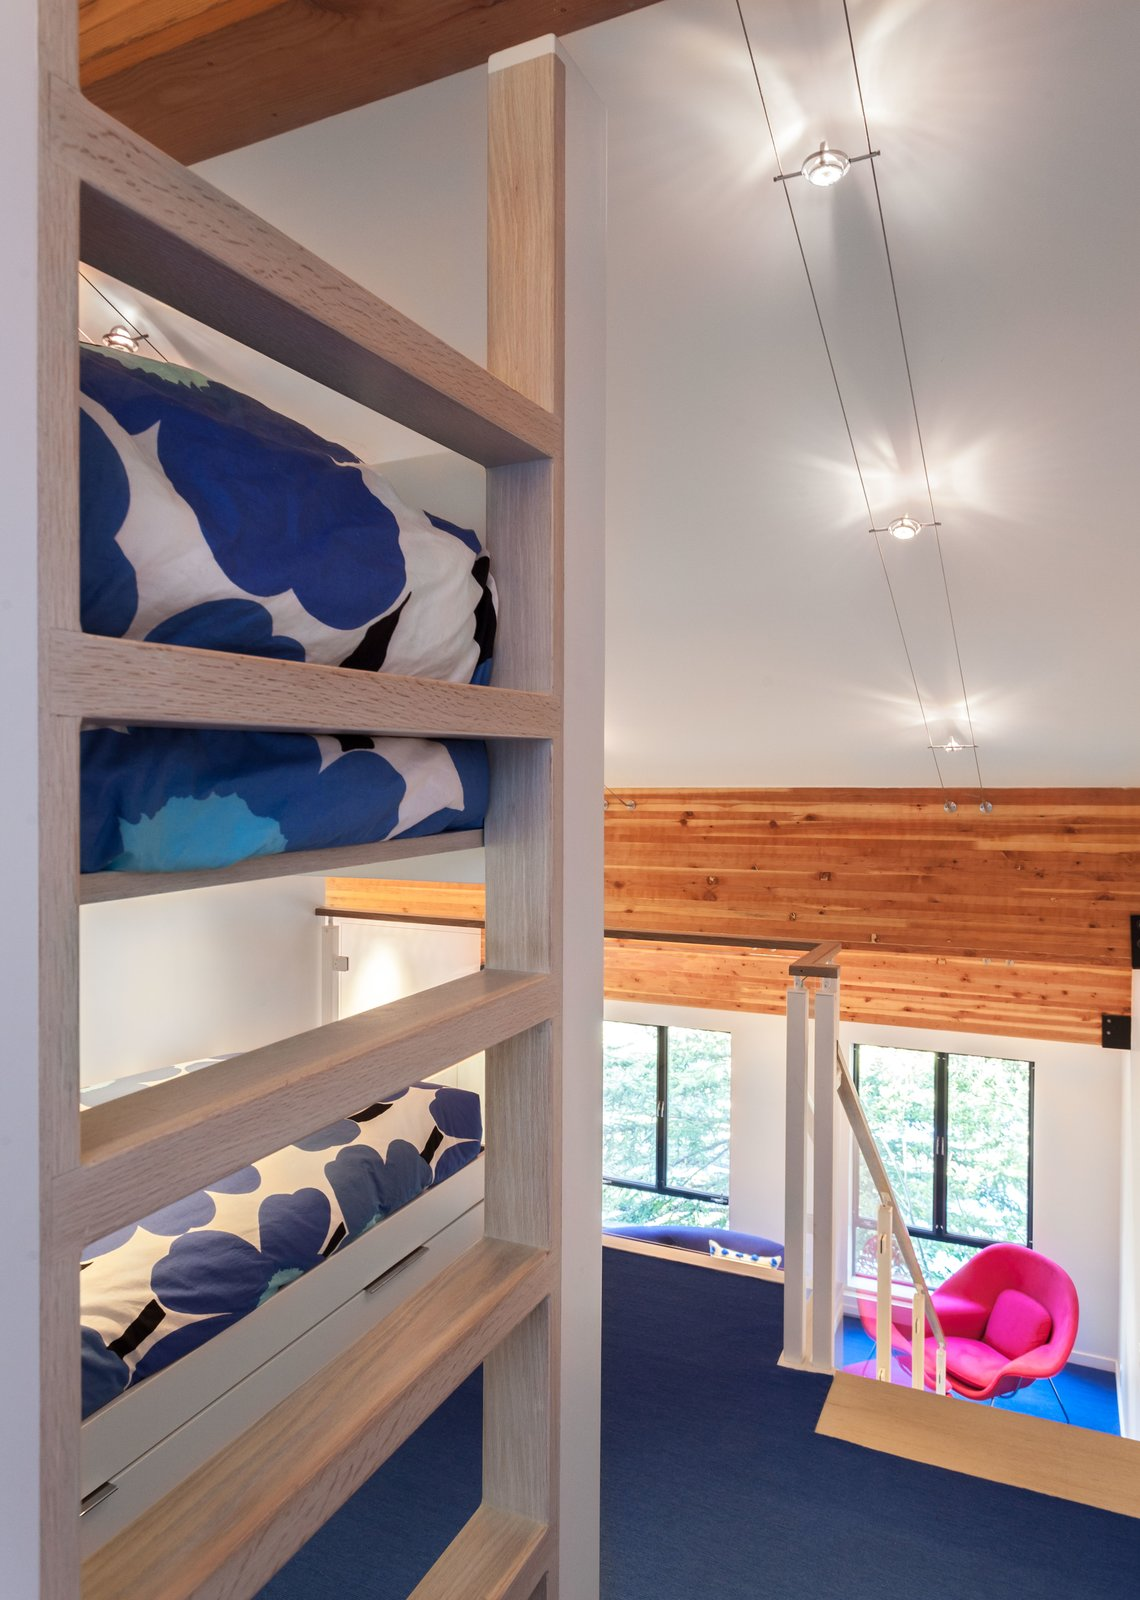 The original loft had only one bedroom upstairs, but Simon was able to turn it into two bedrooms. She installed a custom built-in bunk bed.  Photo 6 of 10 in Bright Colors and Sleek White Oak Fill This Playful Lake Tahoe Loft